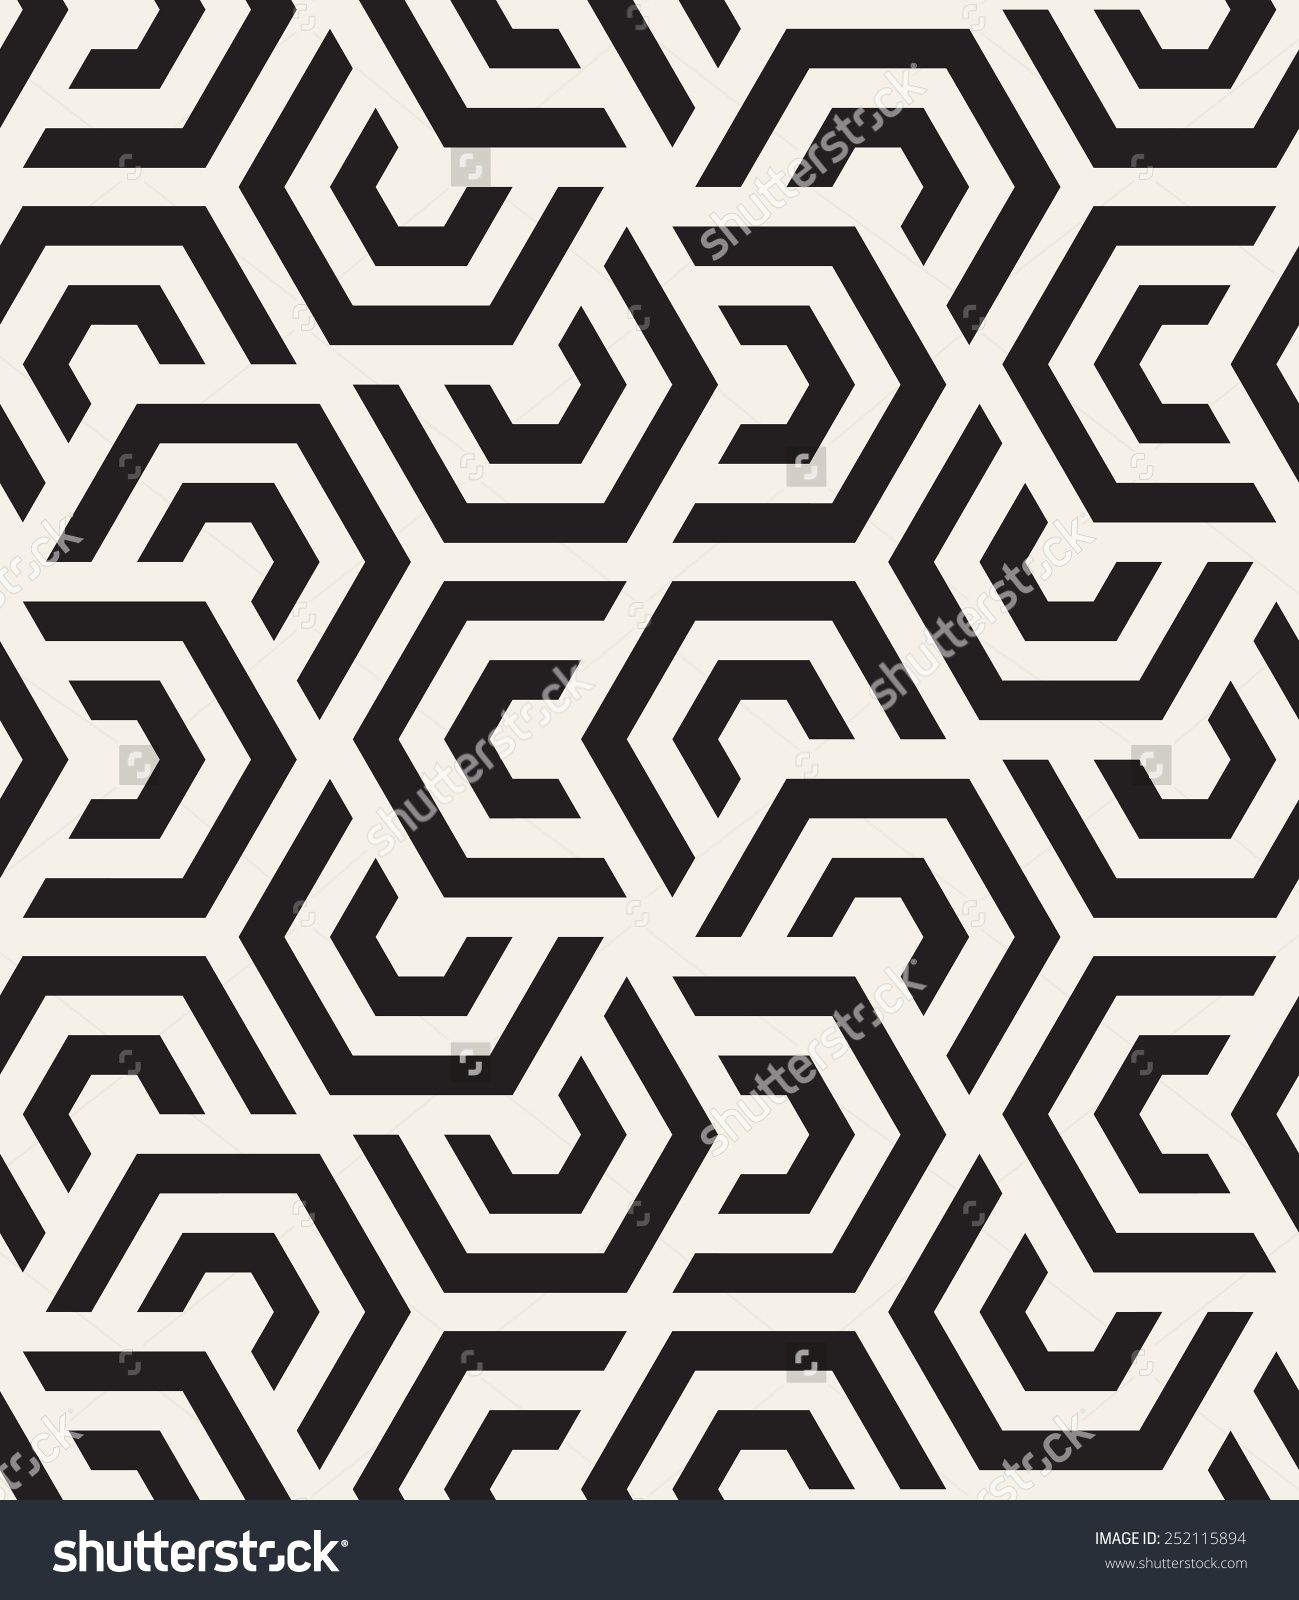 Vector seamless pattern modern stylish texture repeating Geometric patterns